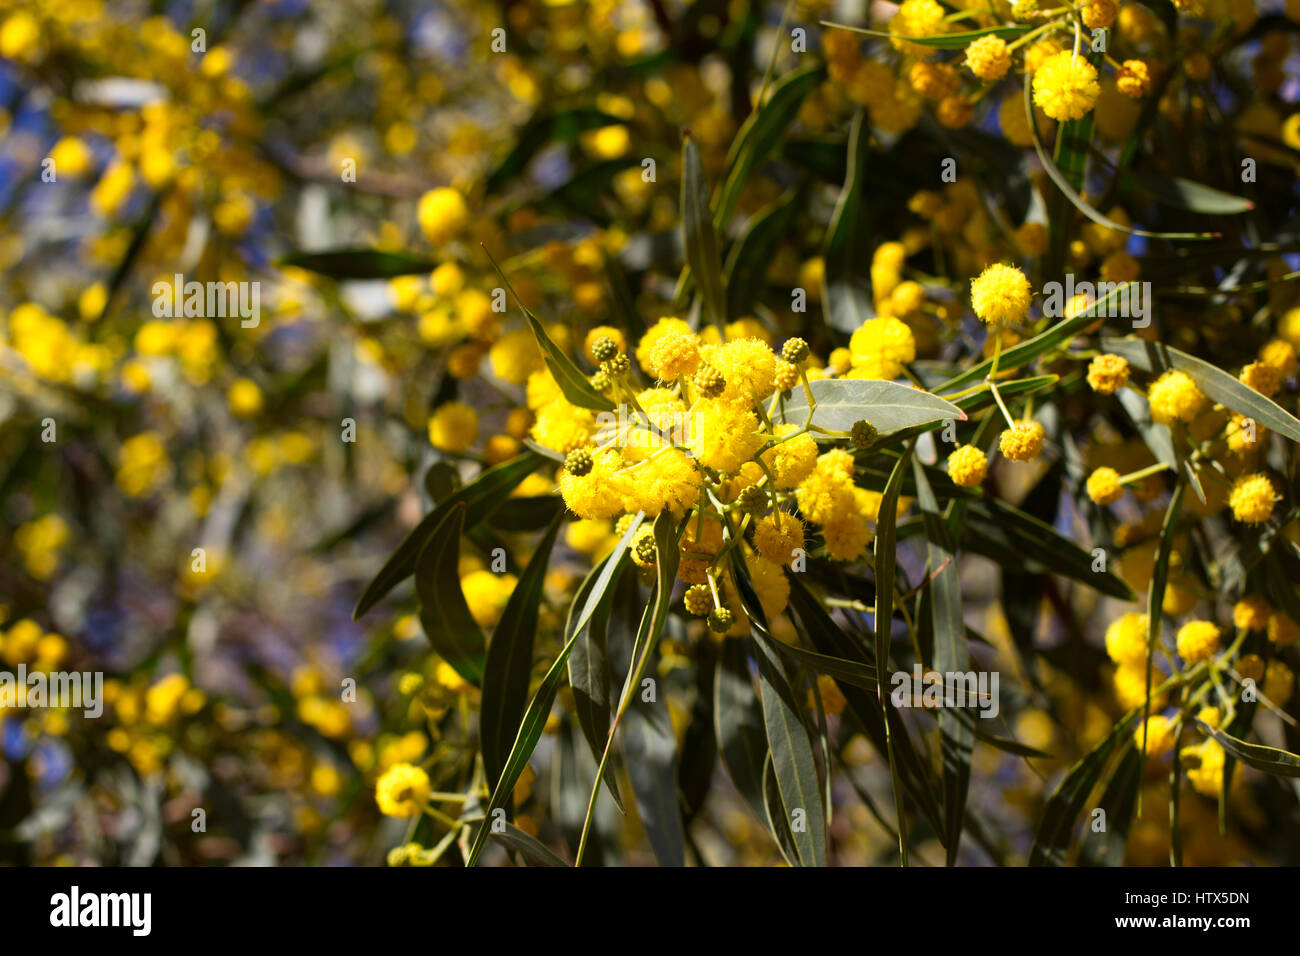 Yellow ball of mimosa flowers woman s day 8 march stock photo yellow ball of mimosa flowers woman s day 8 march mightylinksfo